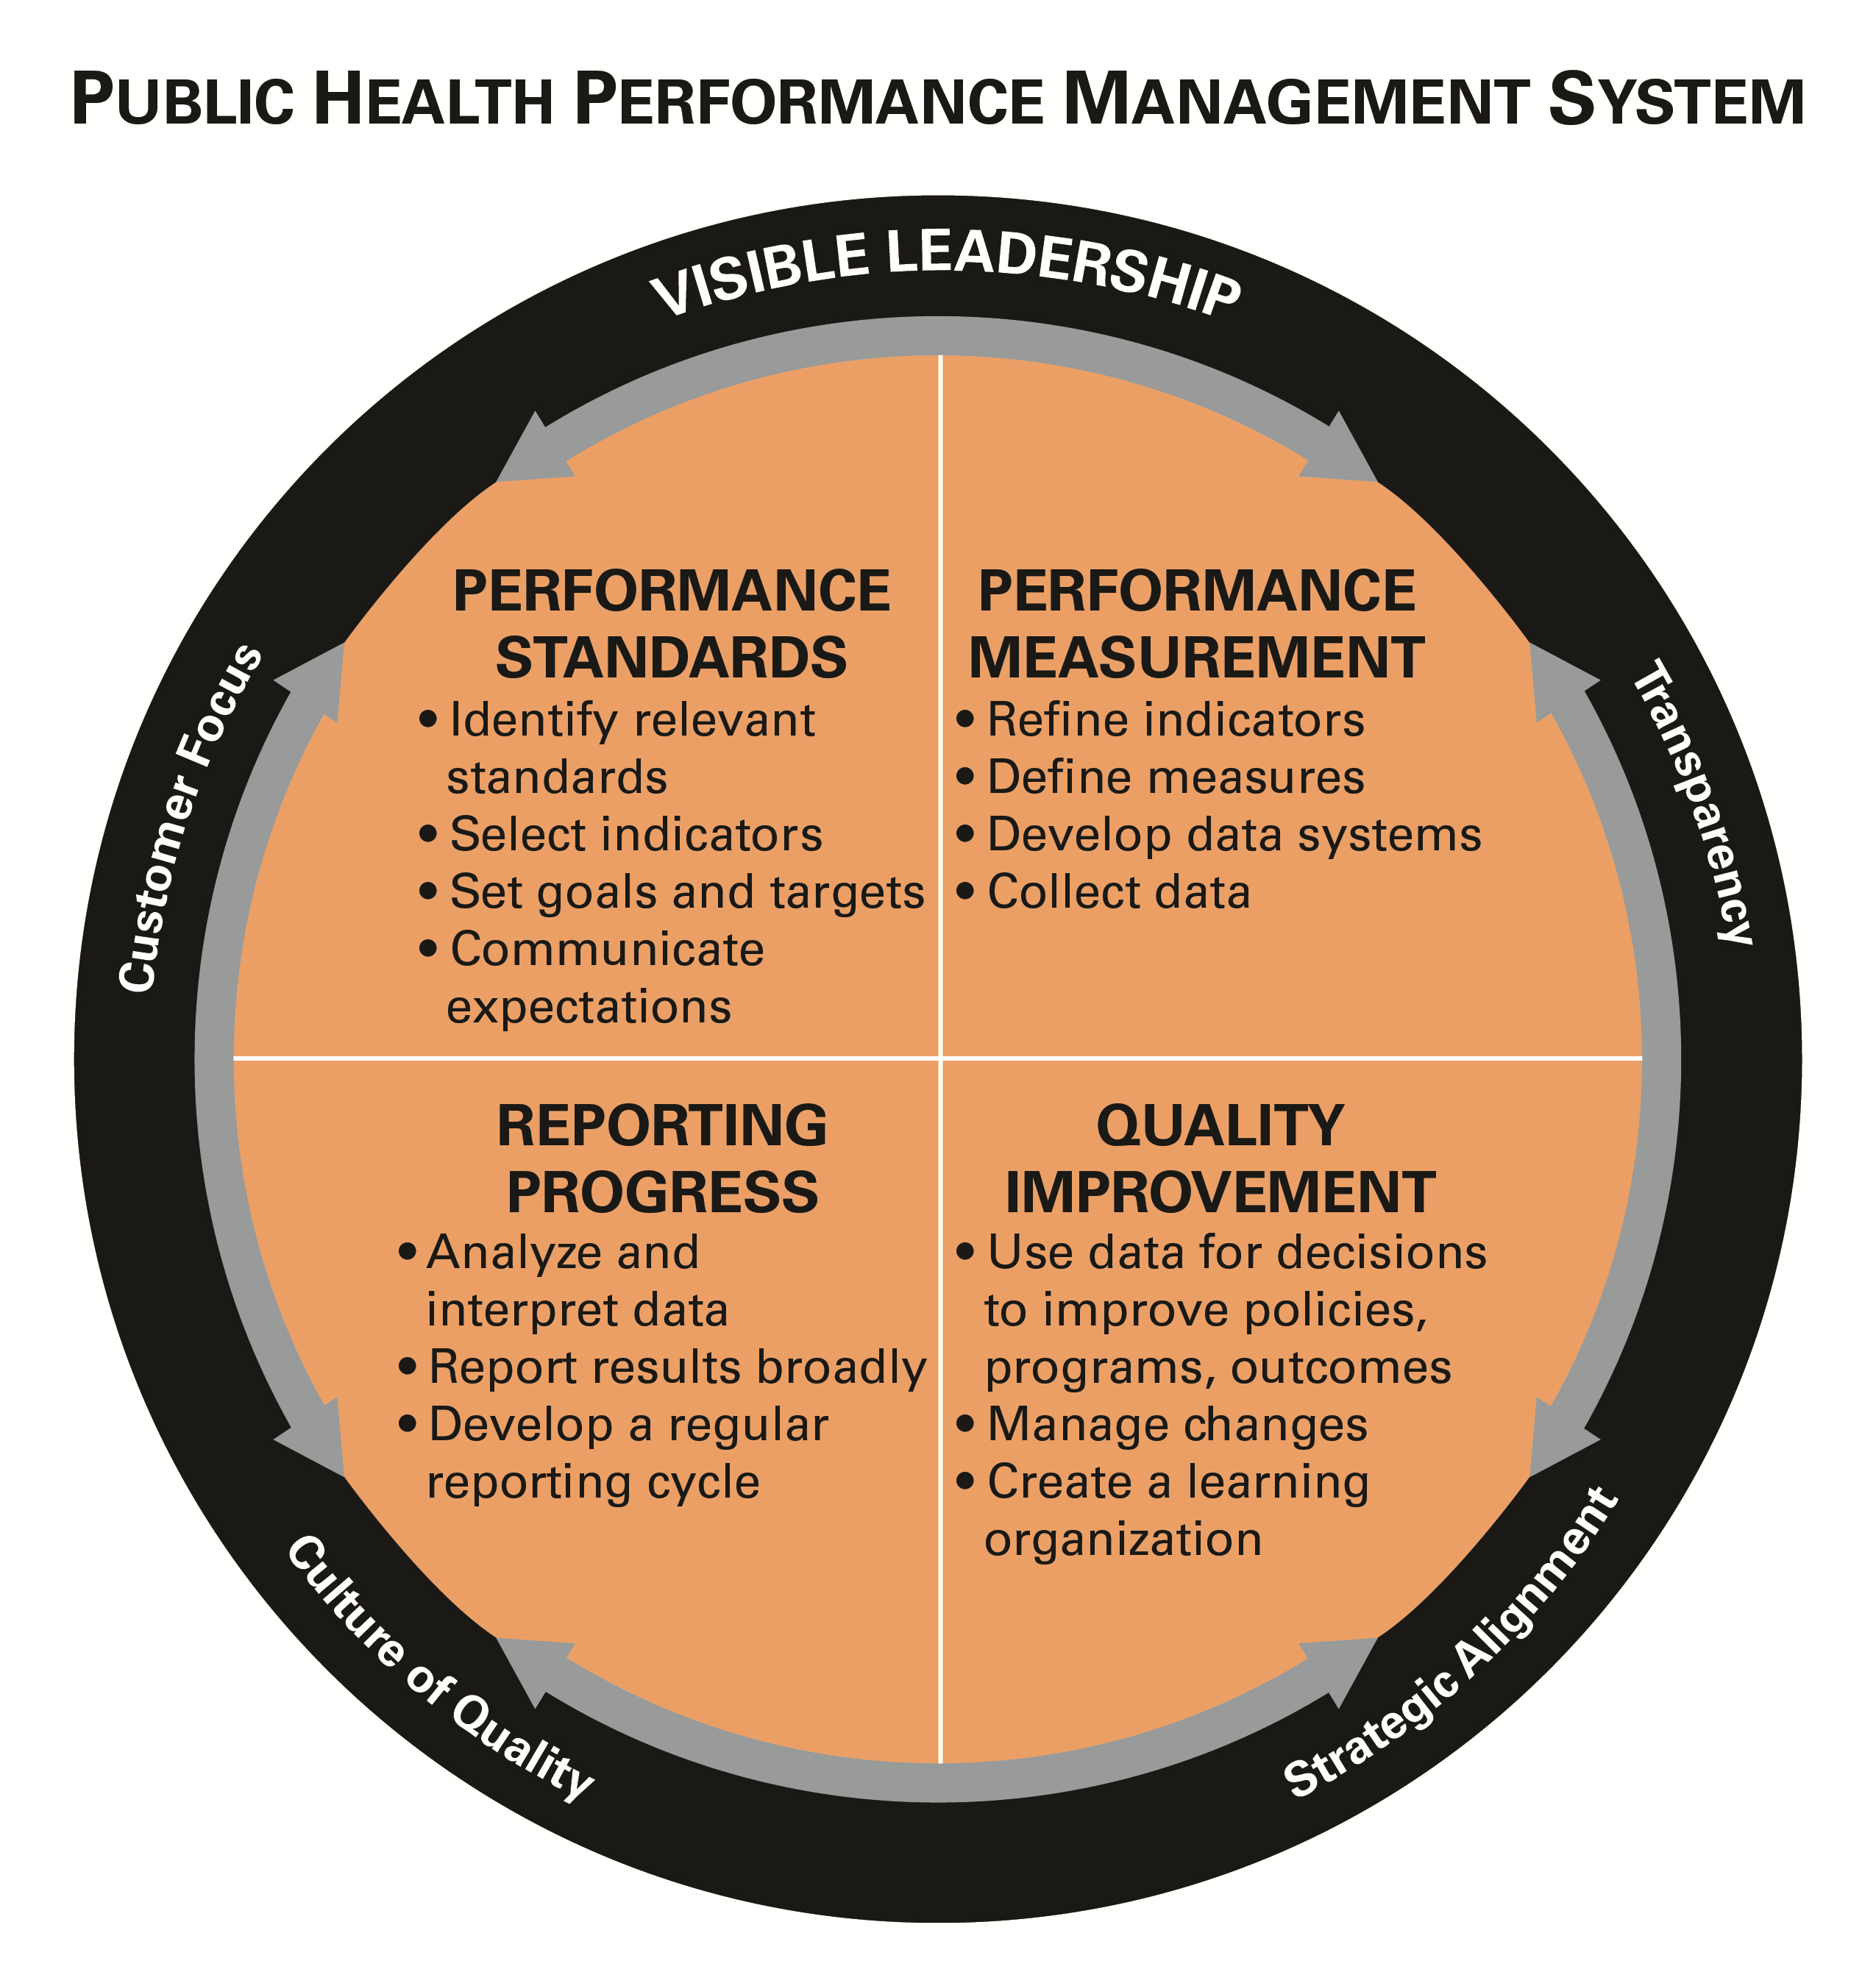 About the Performance Management System Framework